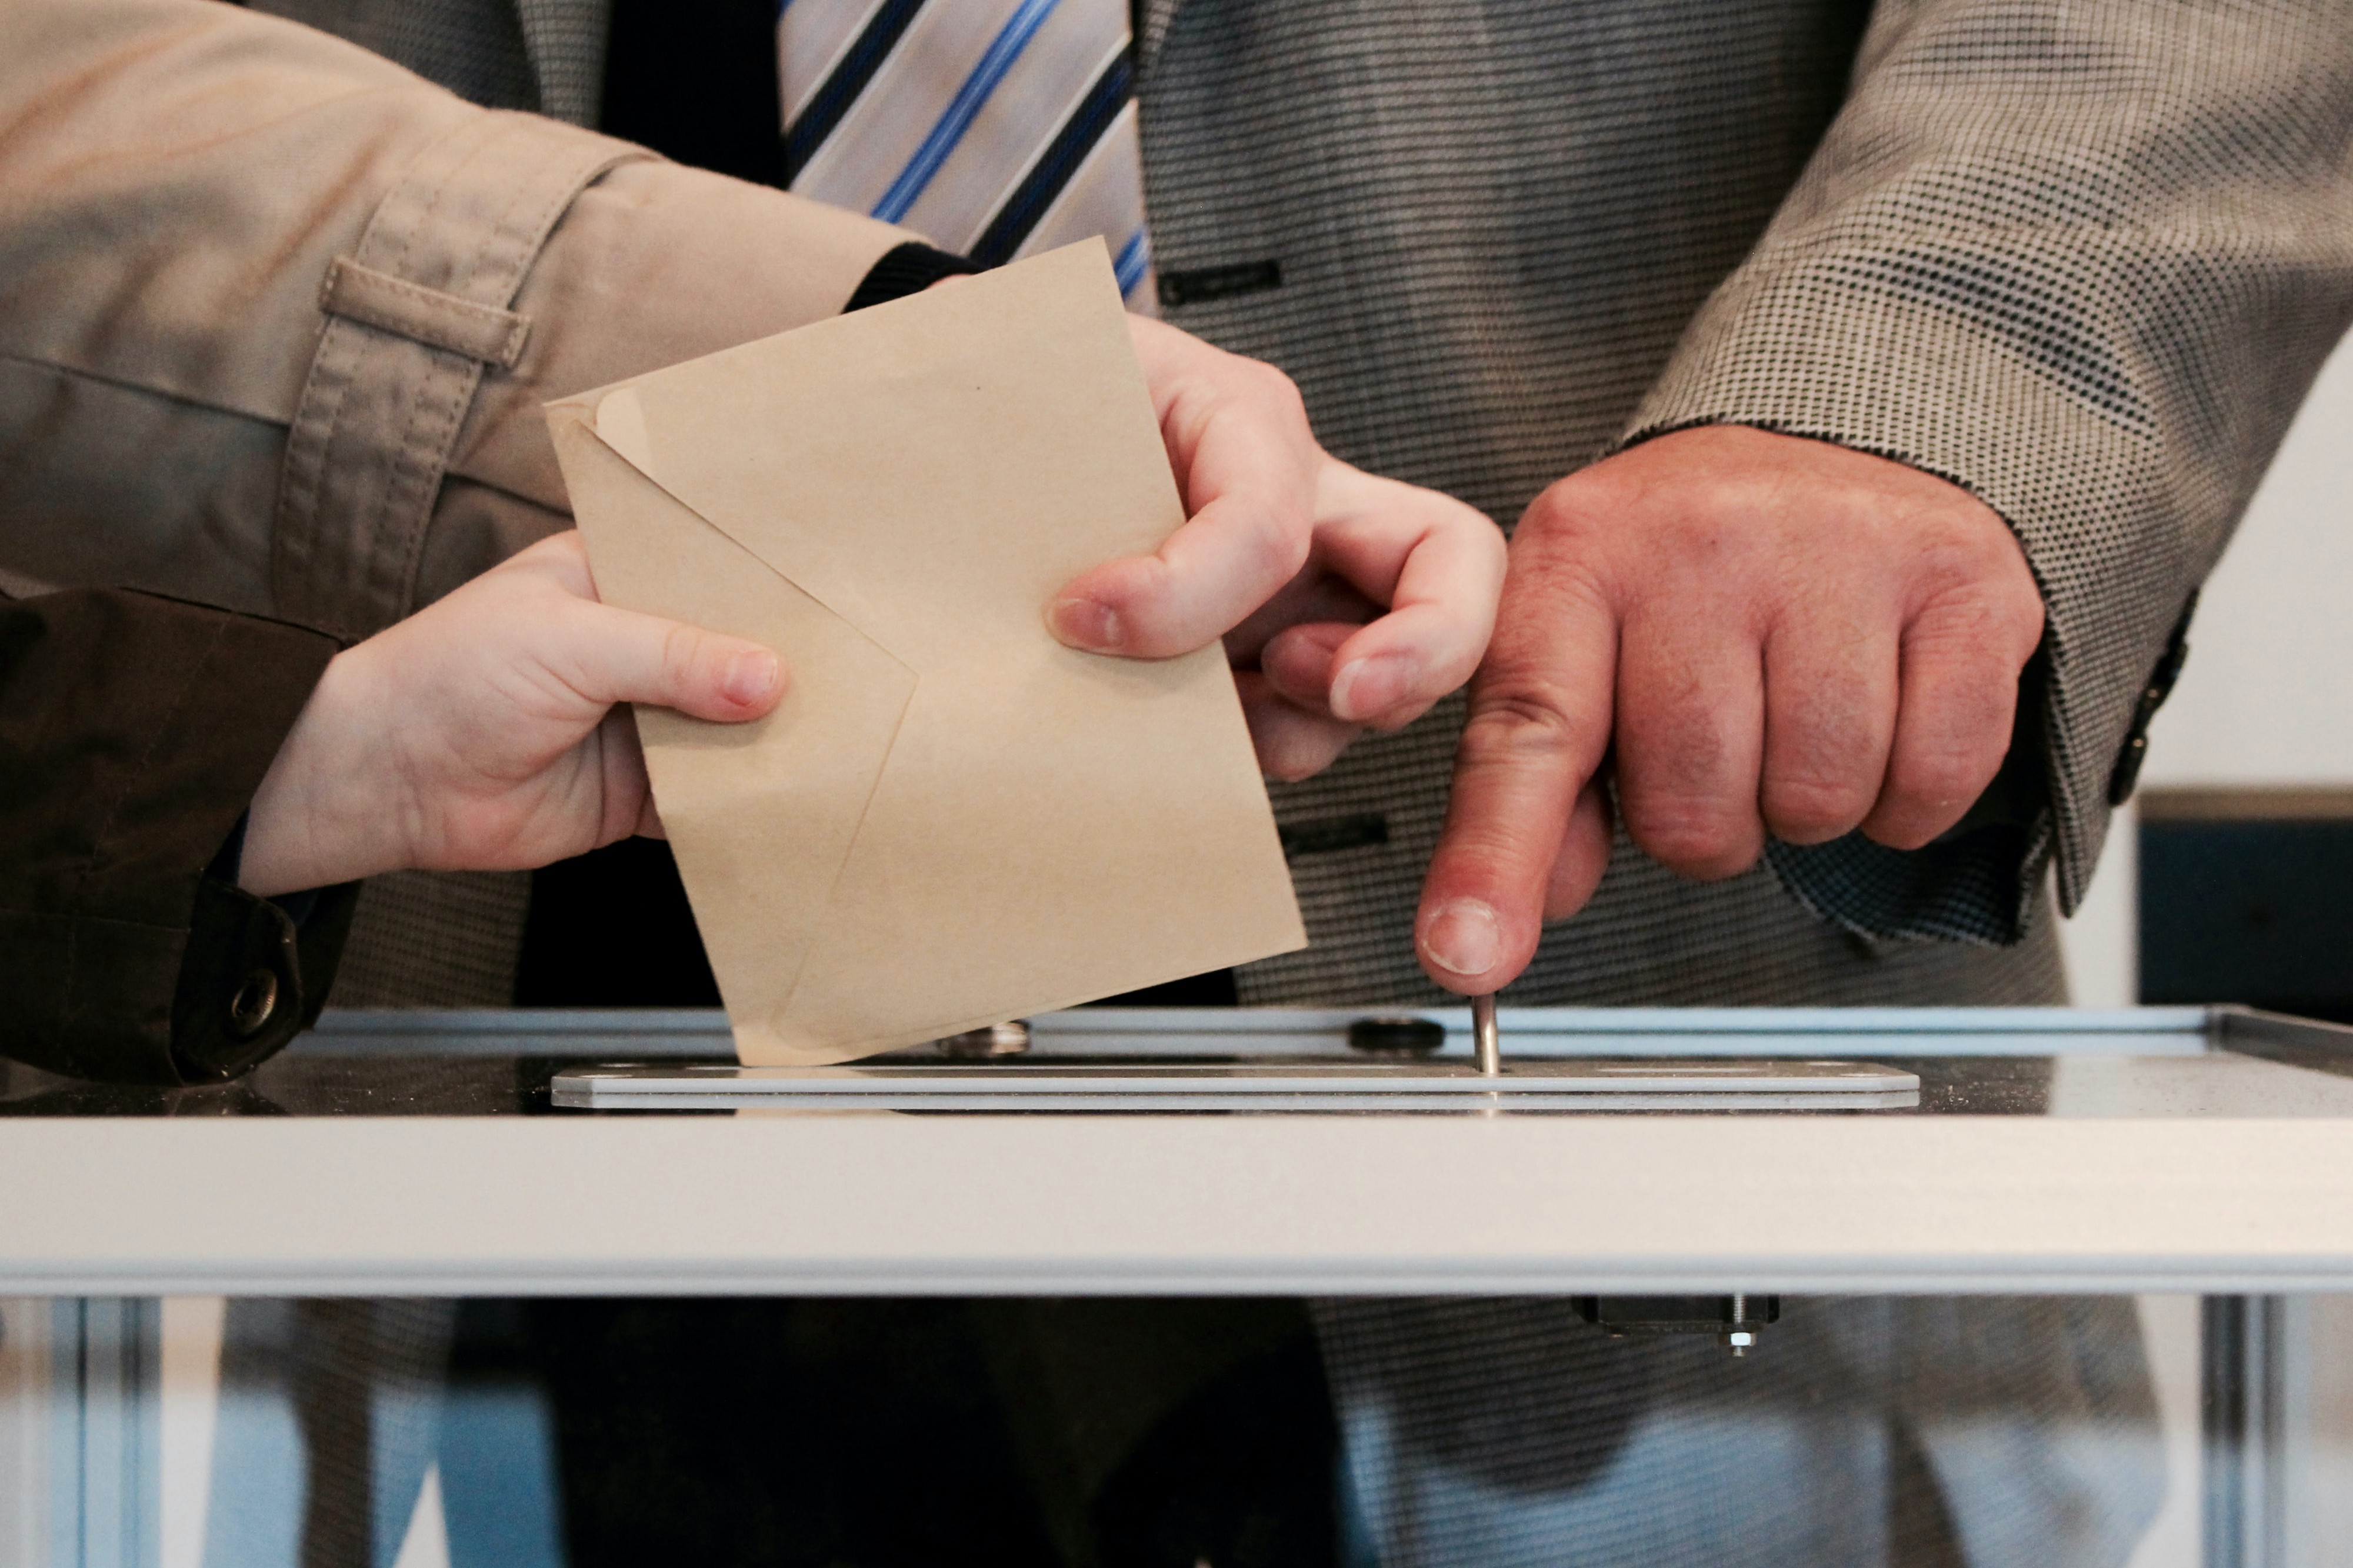 Multiple people's hands guide an envelope into a ballot box